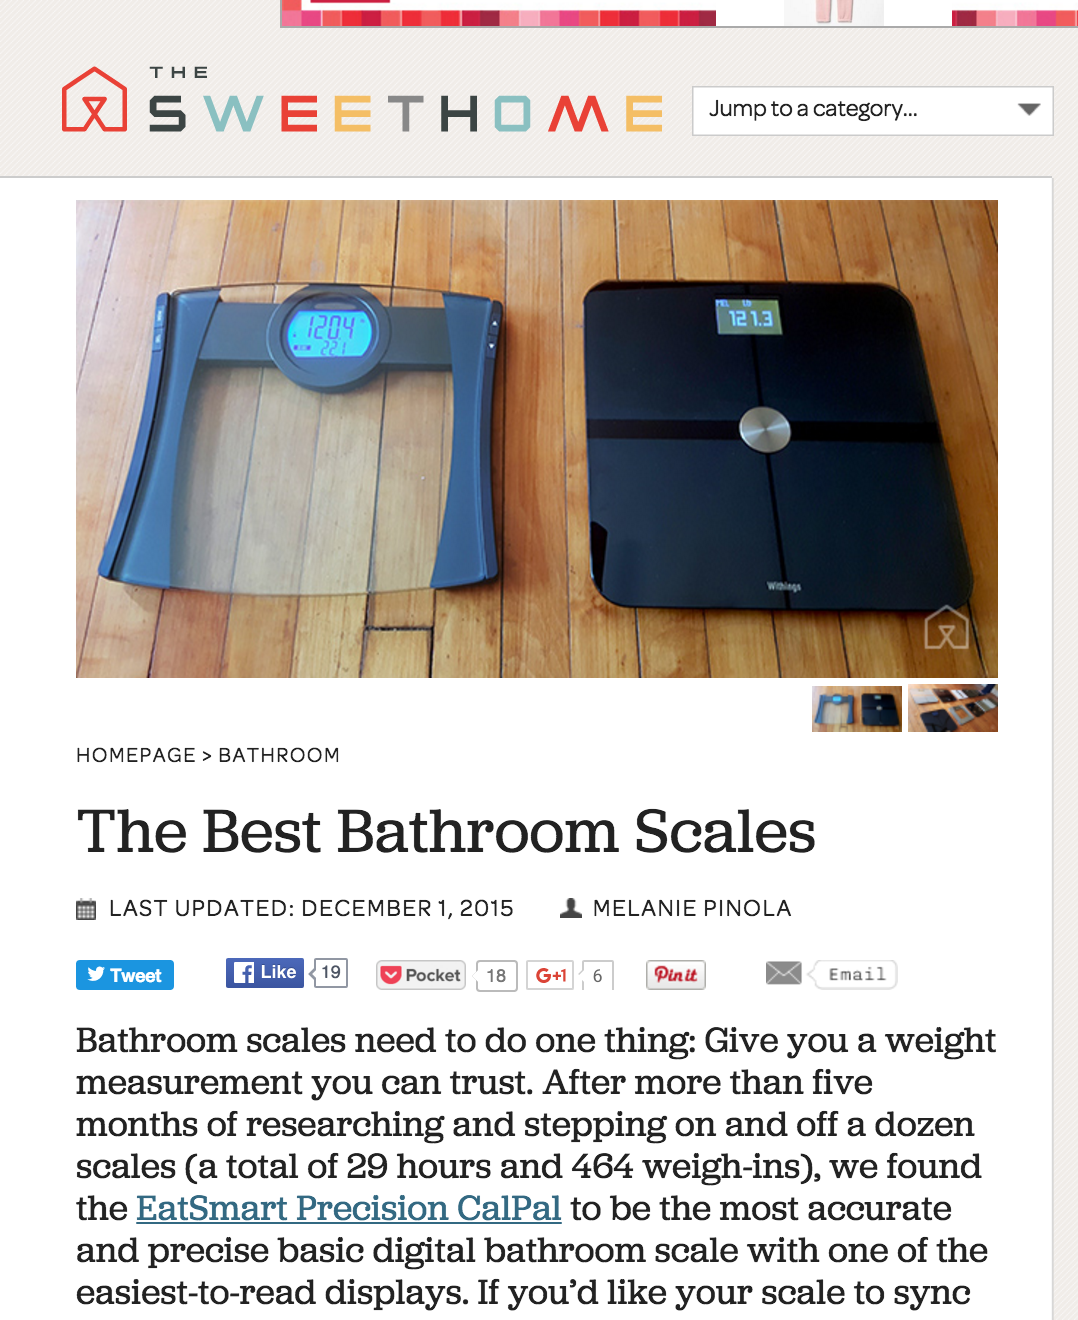 Best accurate bathroom scales - The 25 Best Best Bathroom Scale Ideas On Pinterest Beach Style Bathroom Scales How To Tile A Shower And Kitchen Cabinet Pulls